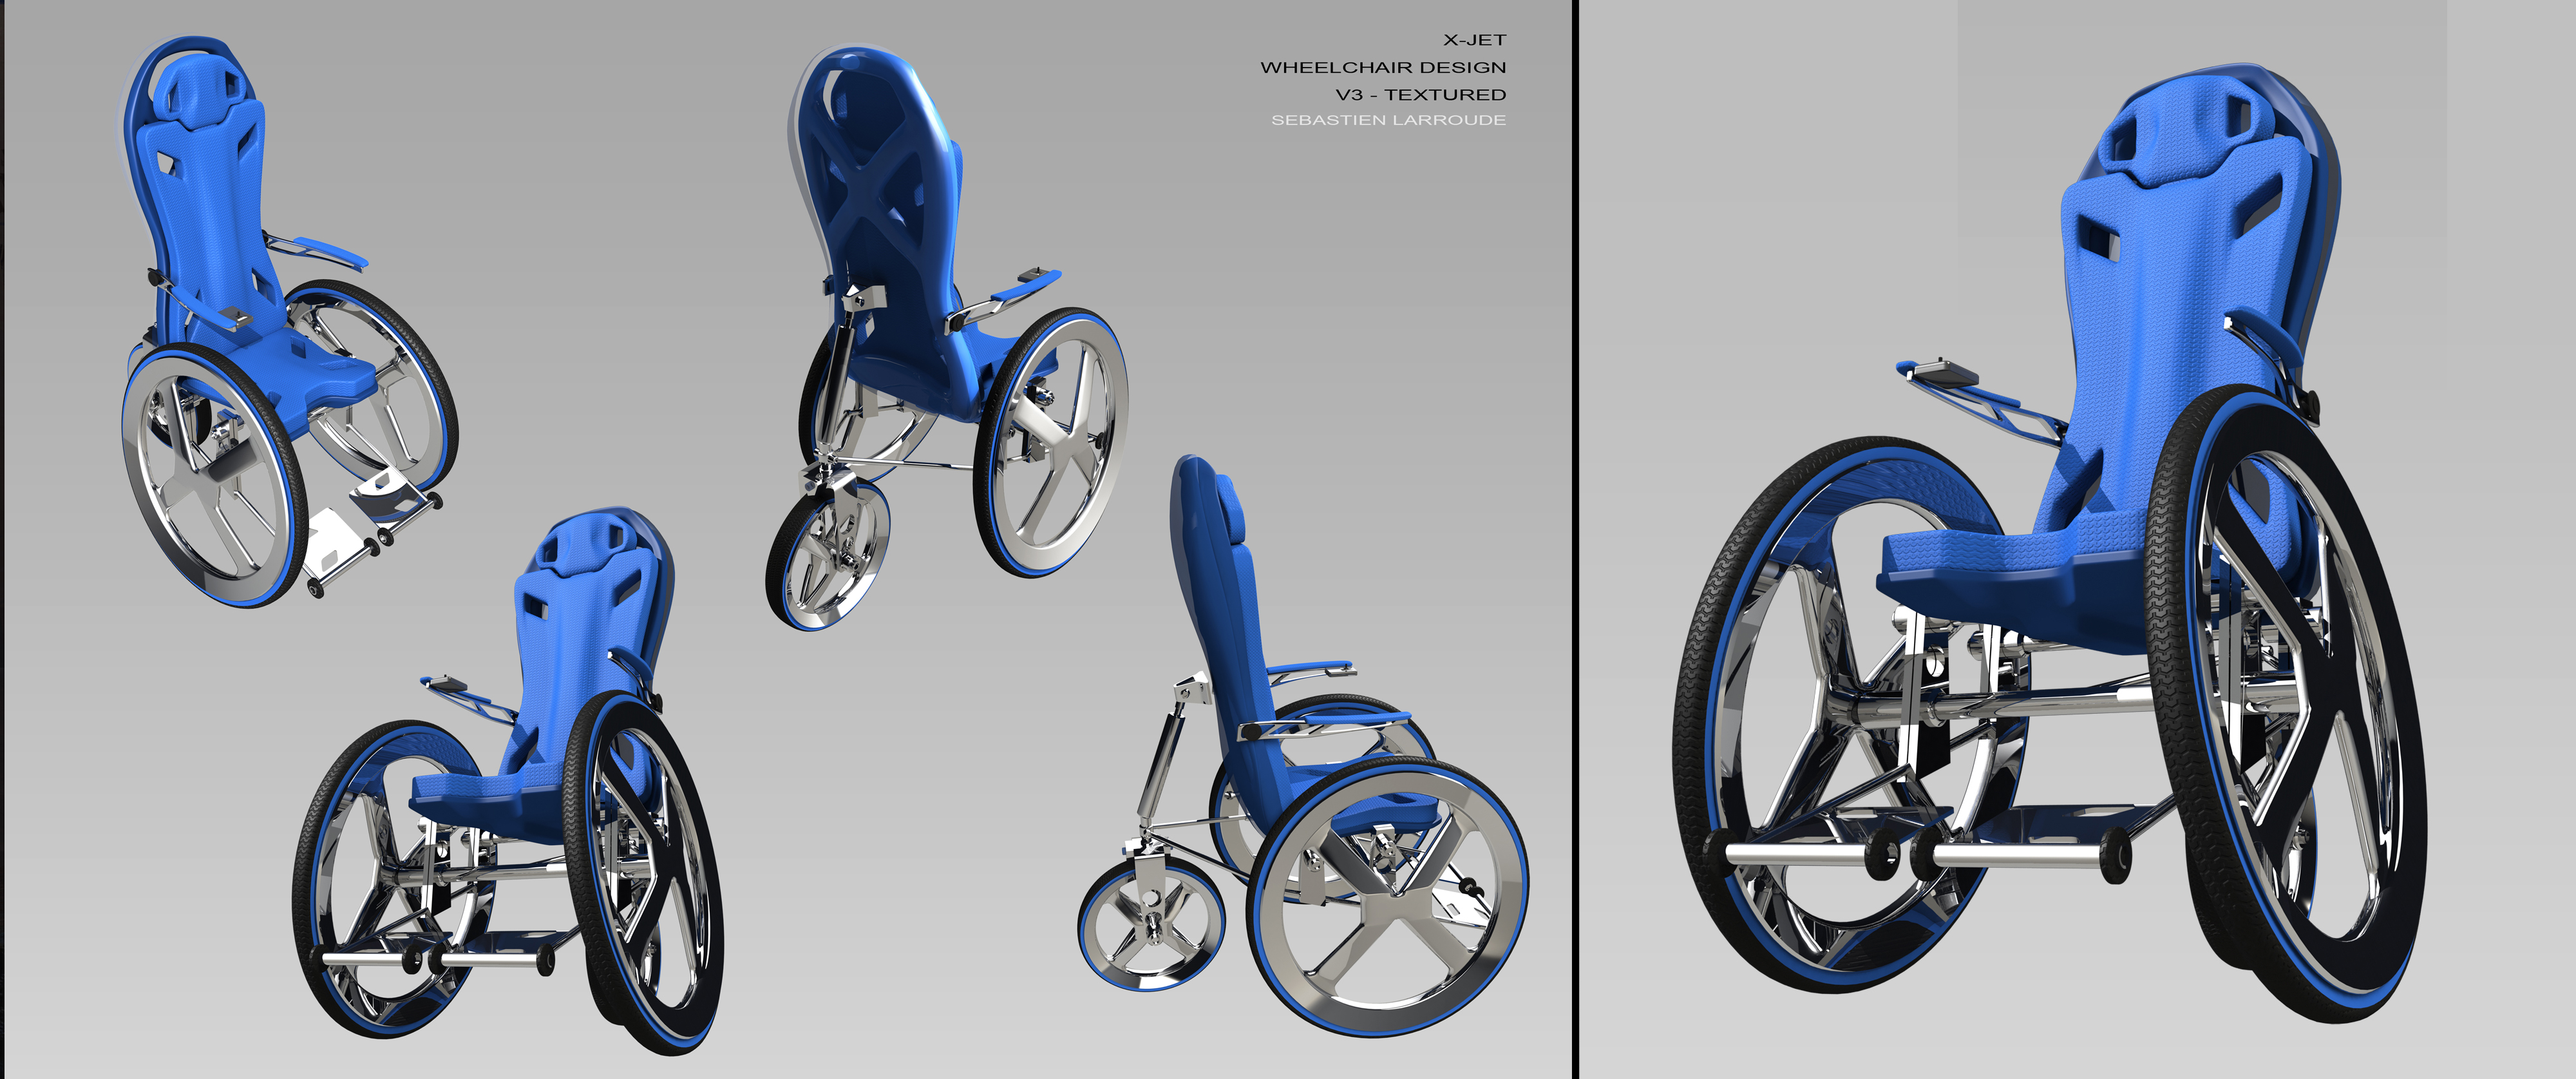 WheelChair02